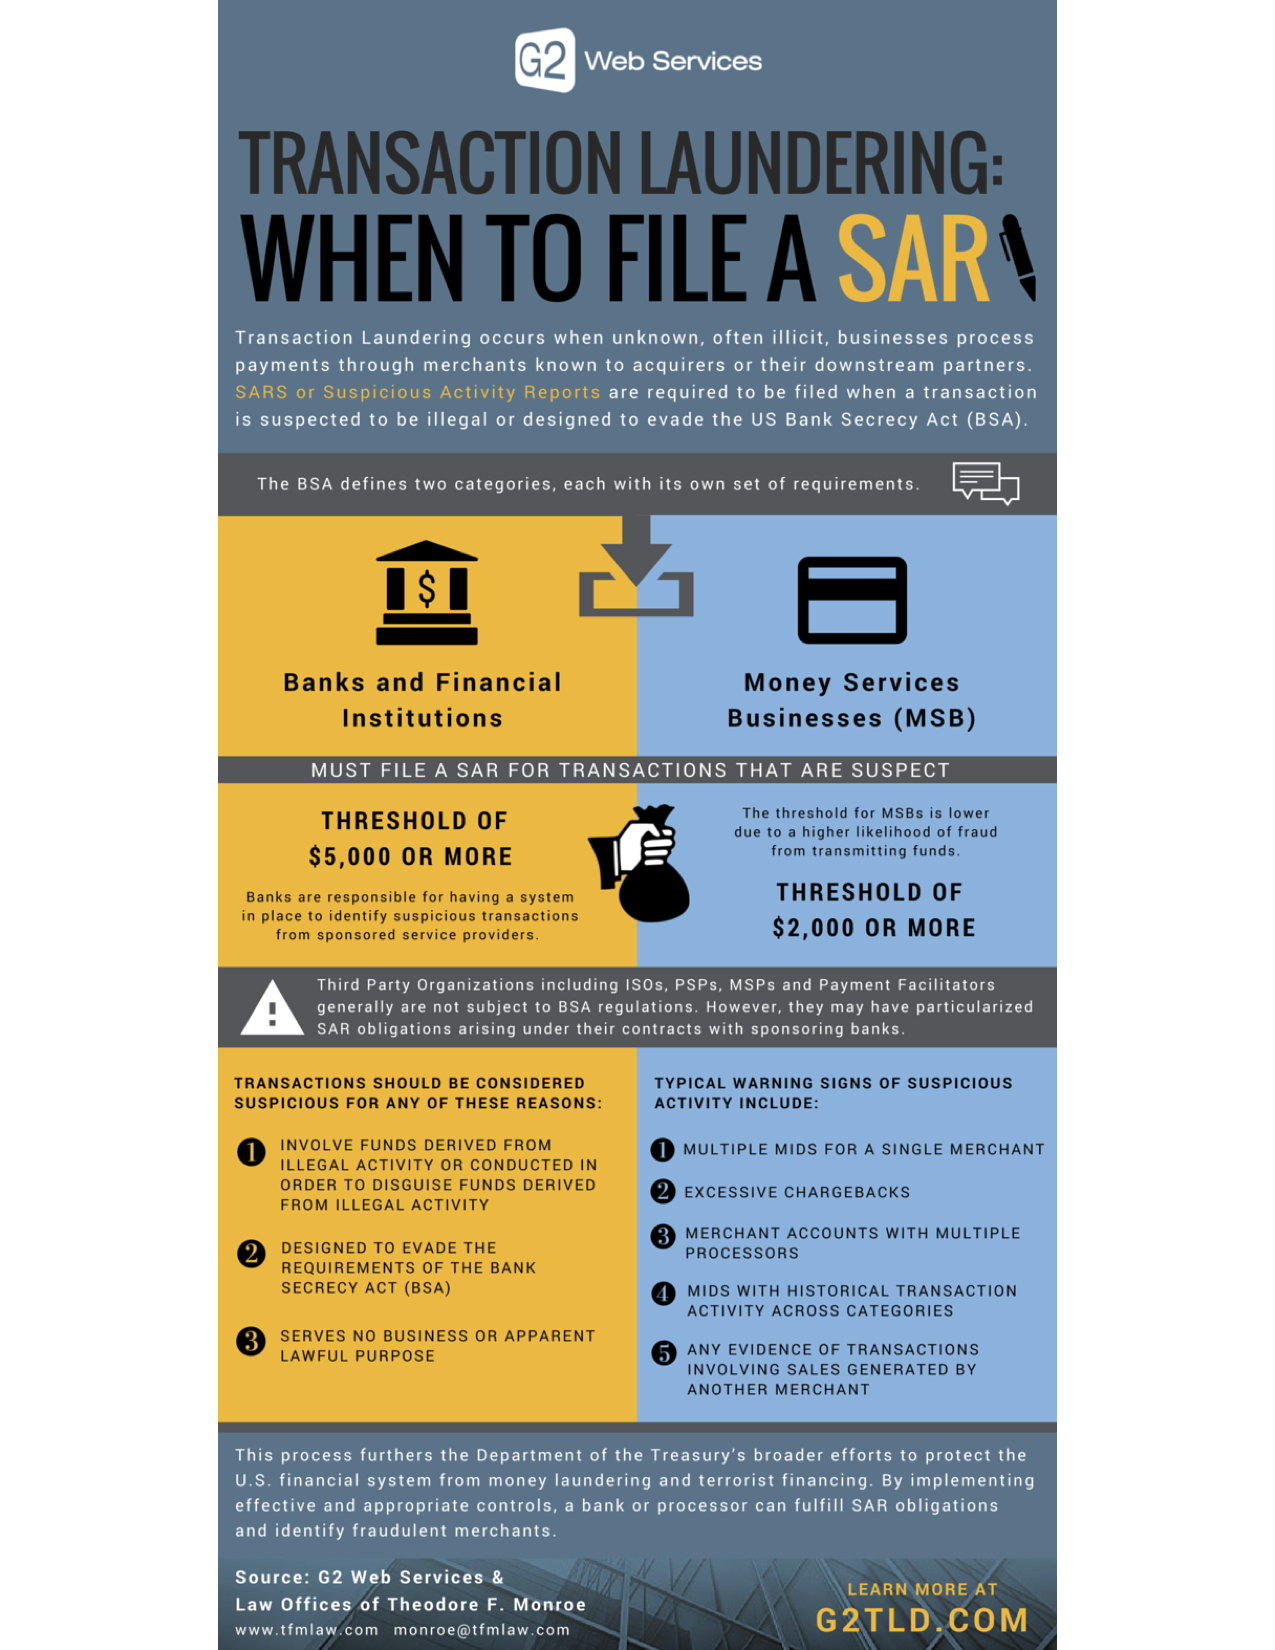 G2 Web Services SARS Infographic